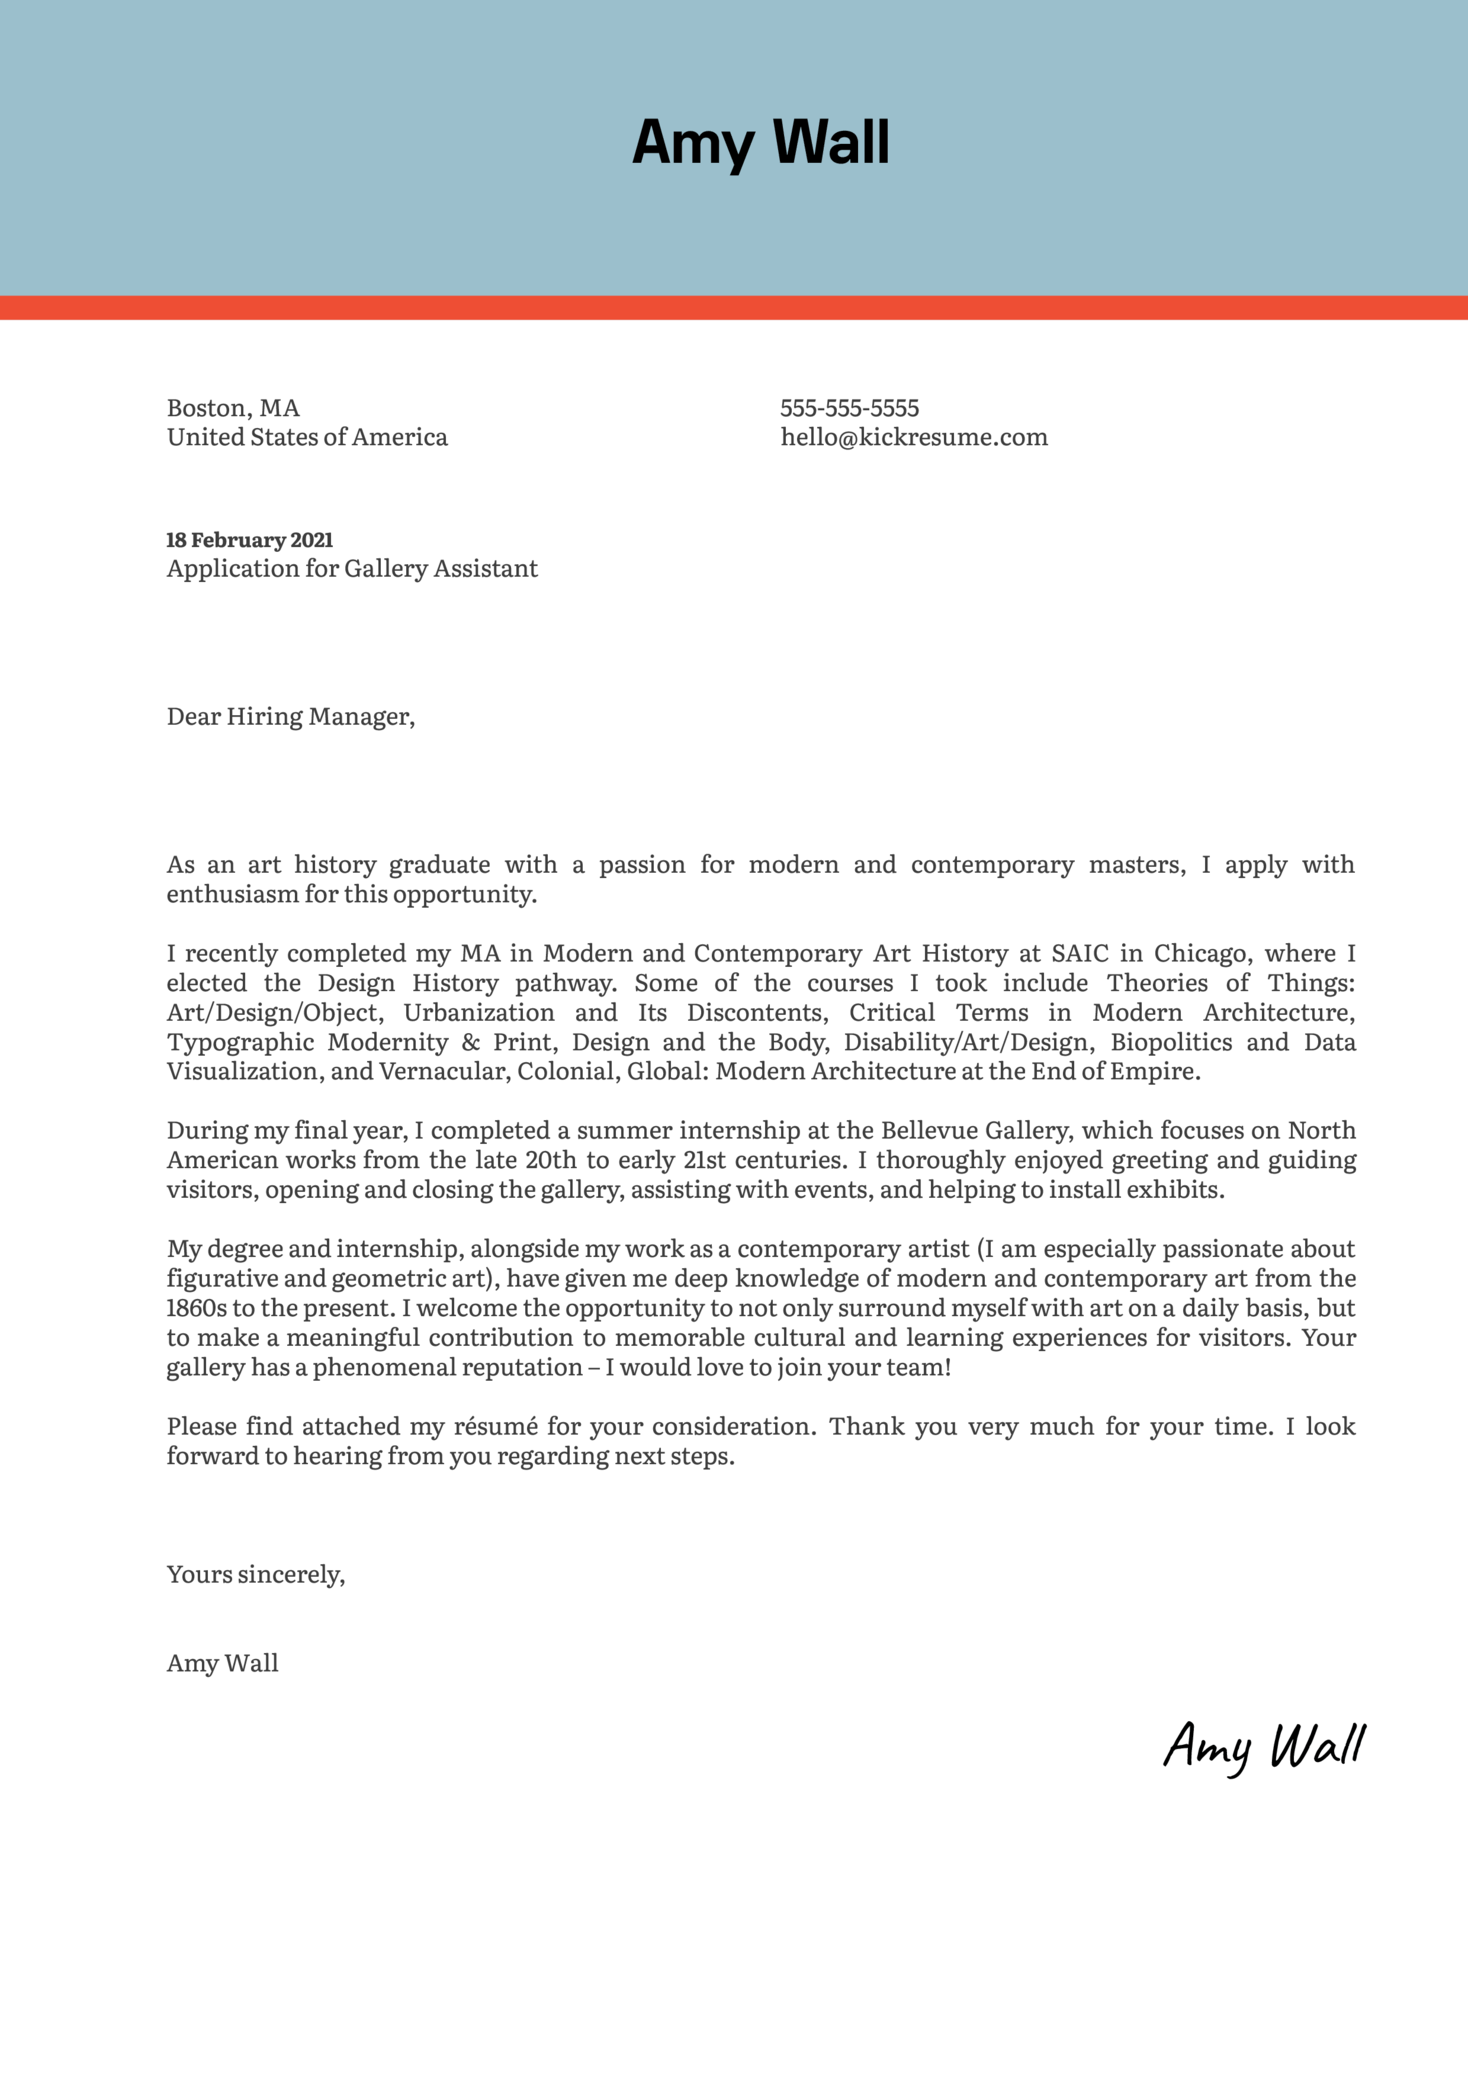 Gallery Assistant Cover Letter Sample